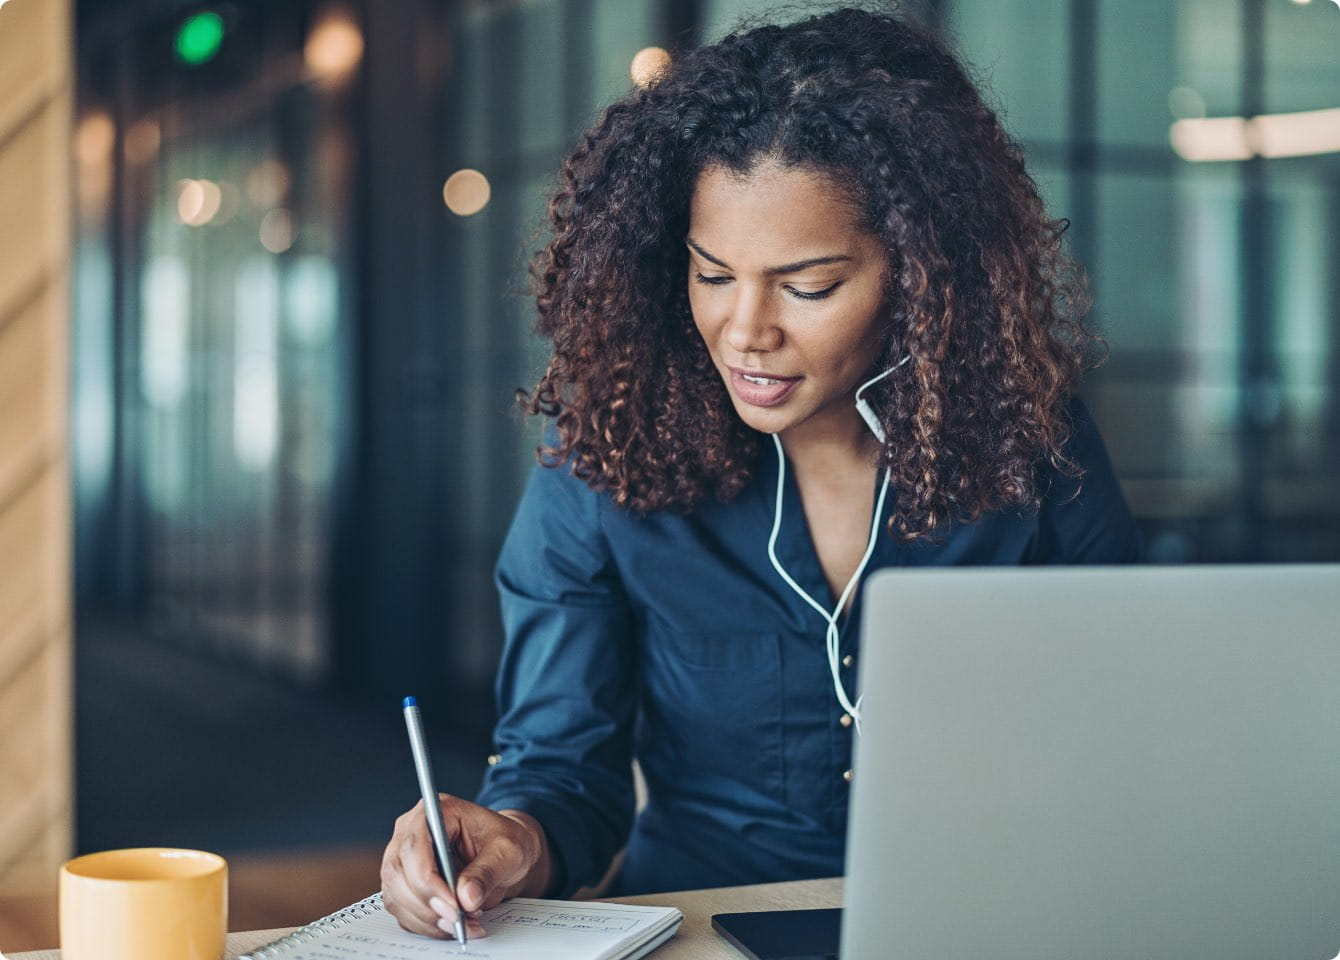 A woman with headphones working on a laptop and taking notes